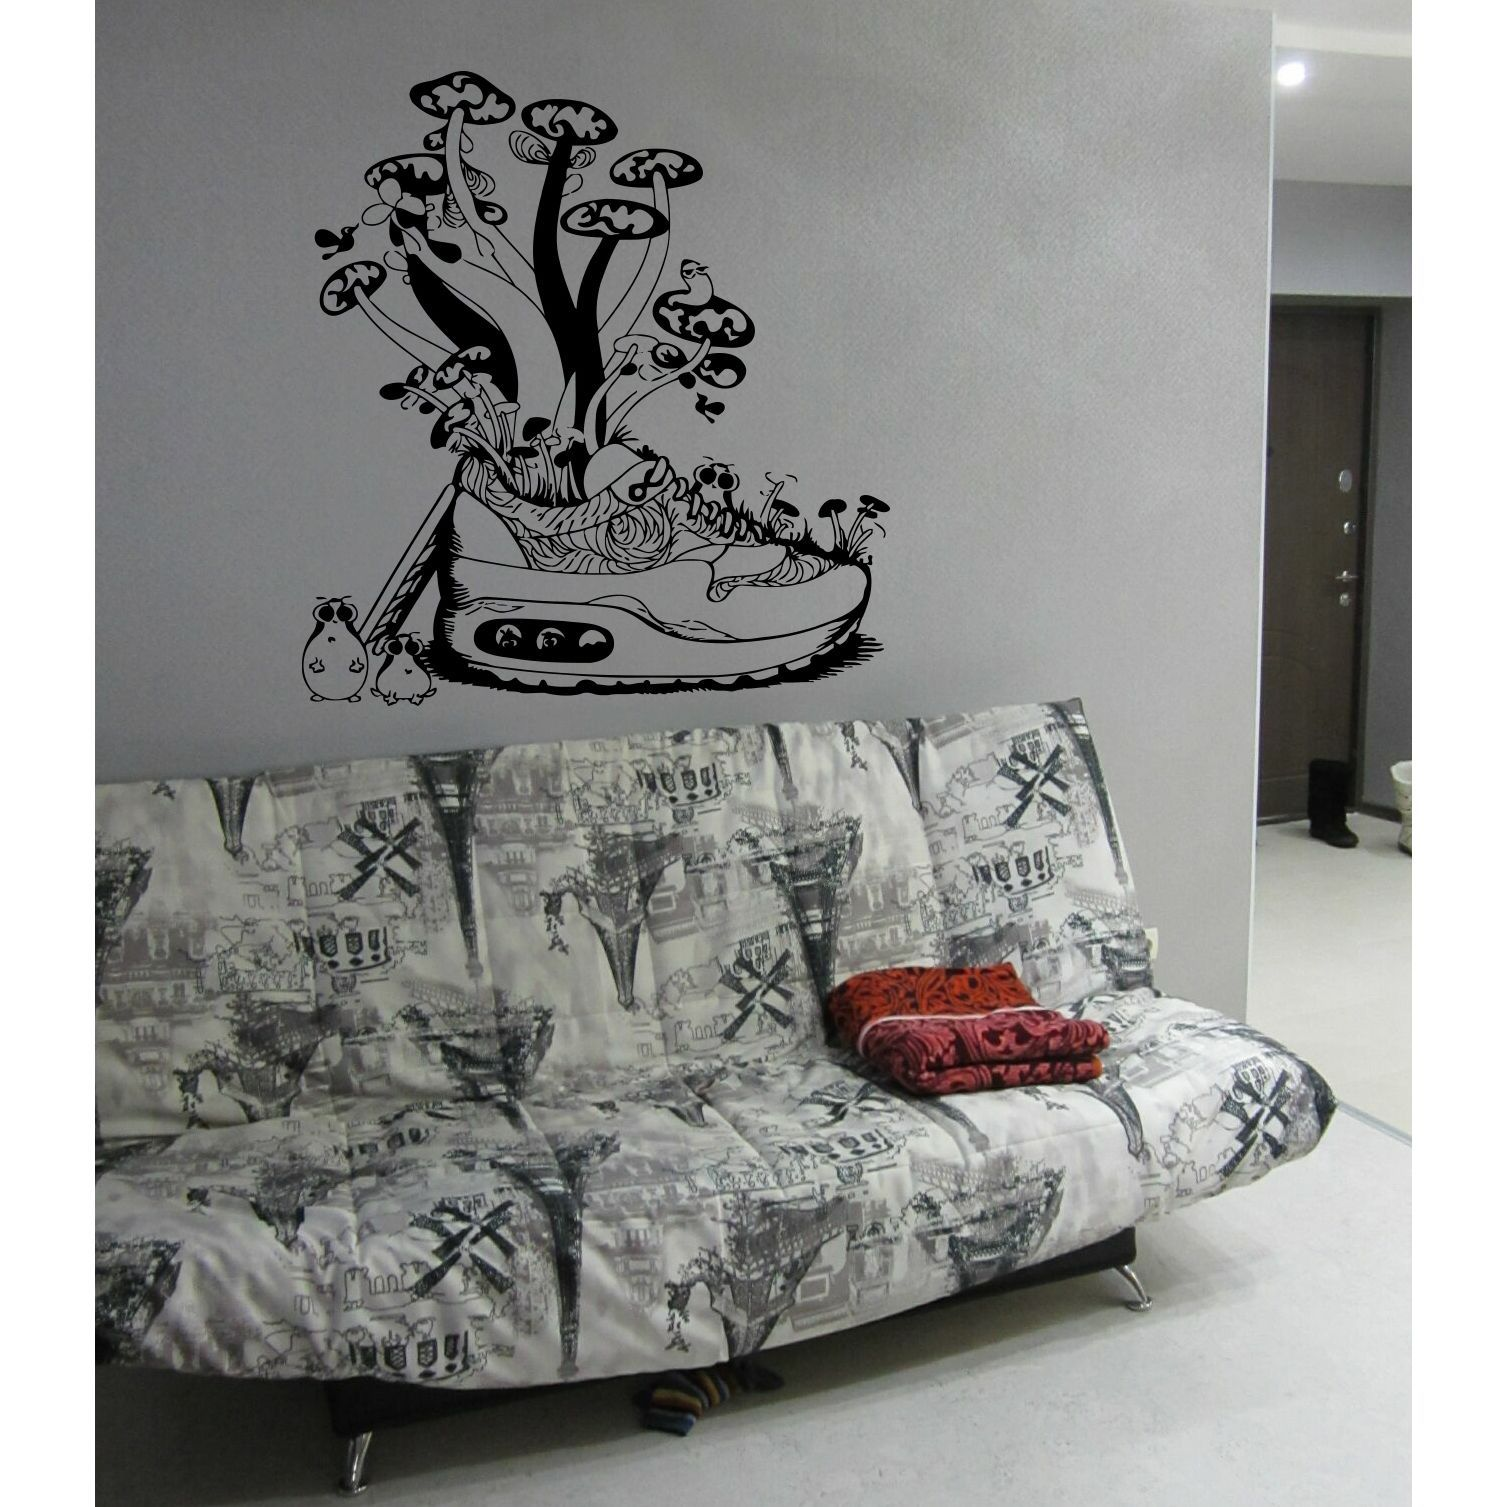 Childrenus cartoon shoes mushrooms wall art sticker decal products